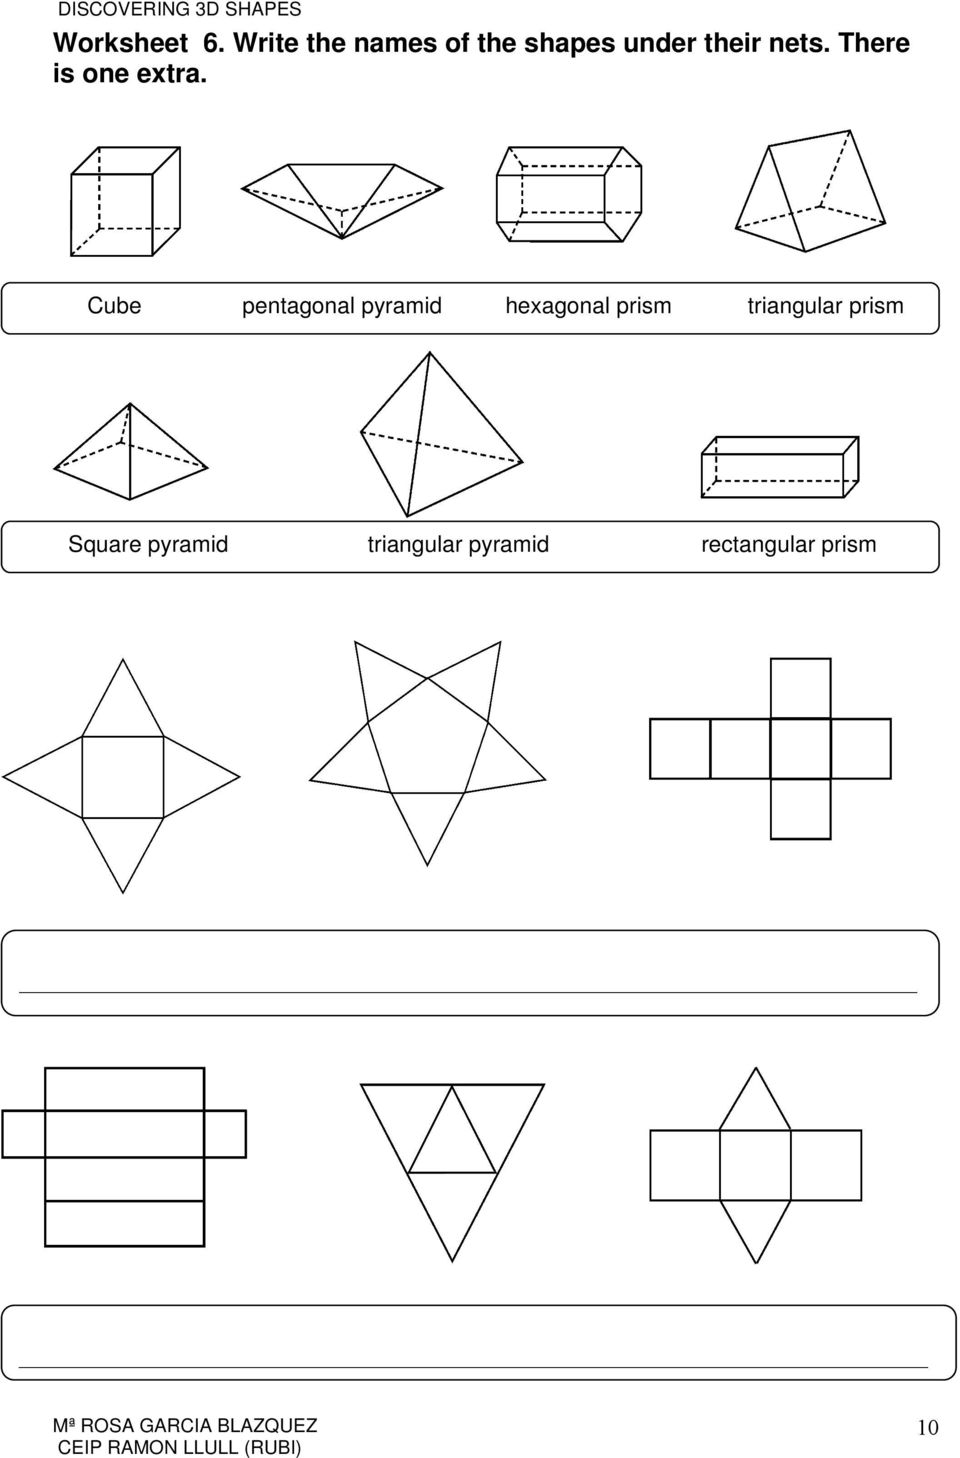 Worksheet Surface Area Nets Worksheet Worksheet Fun Worksheet